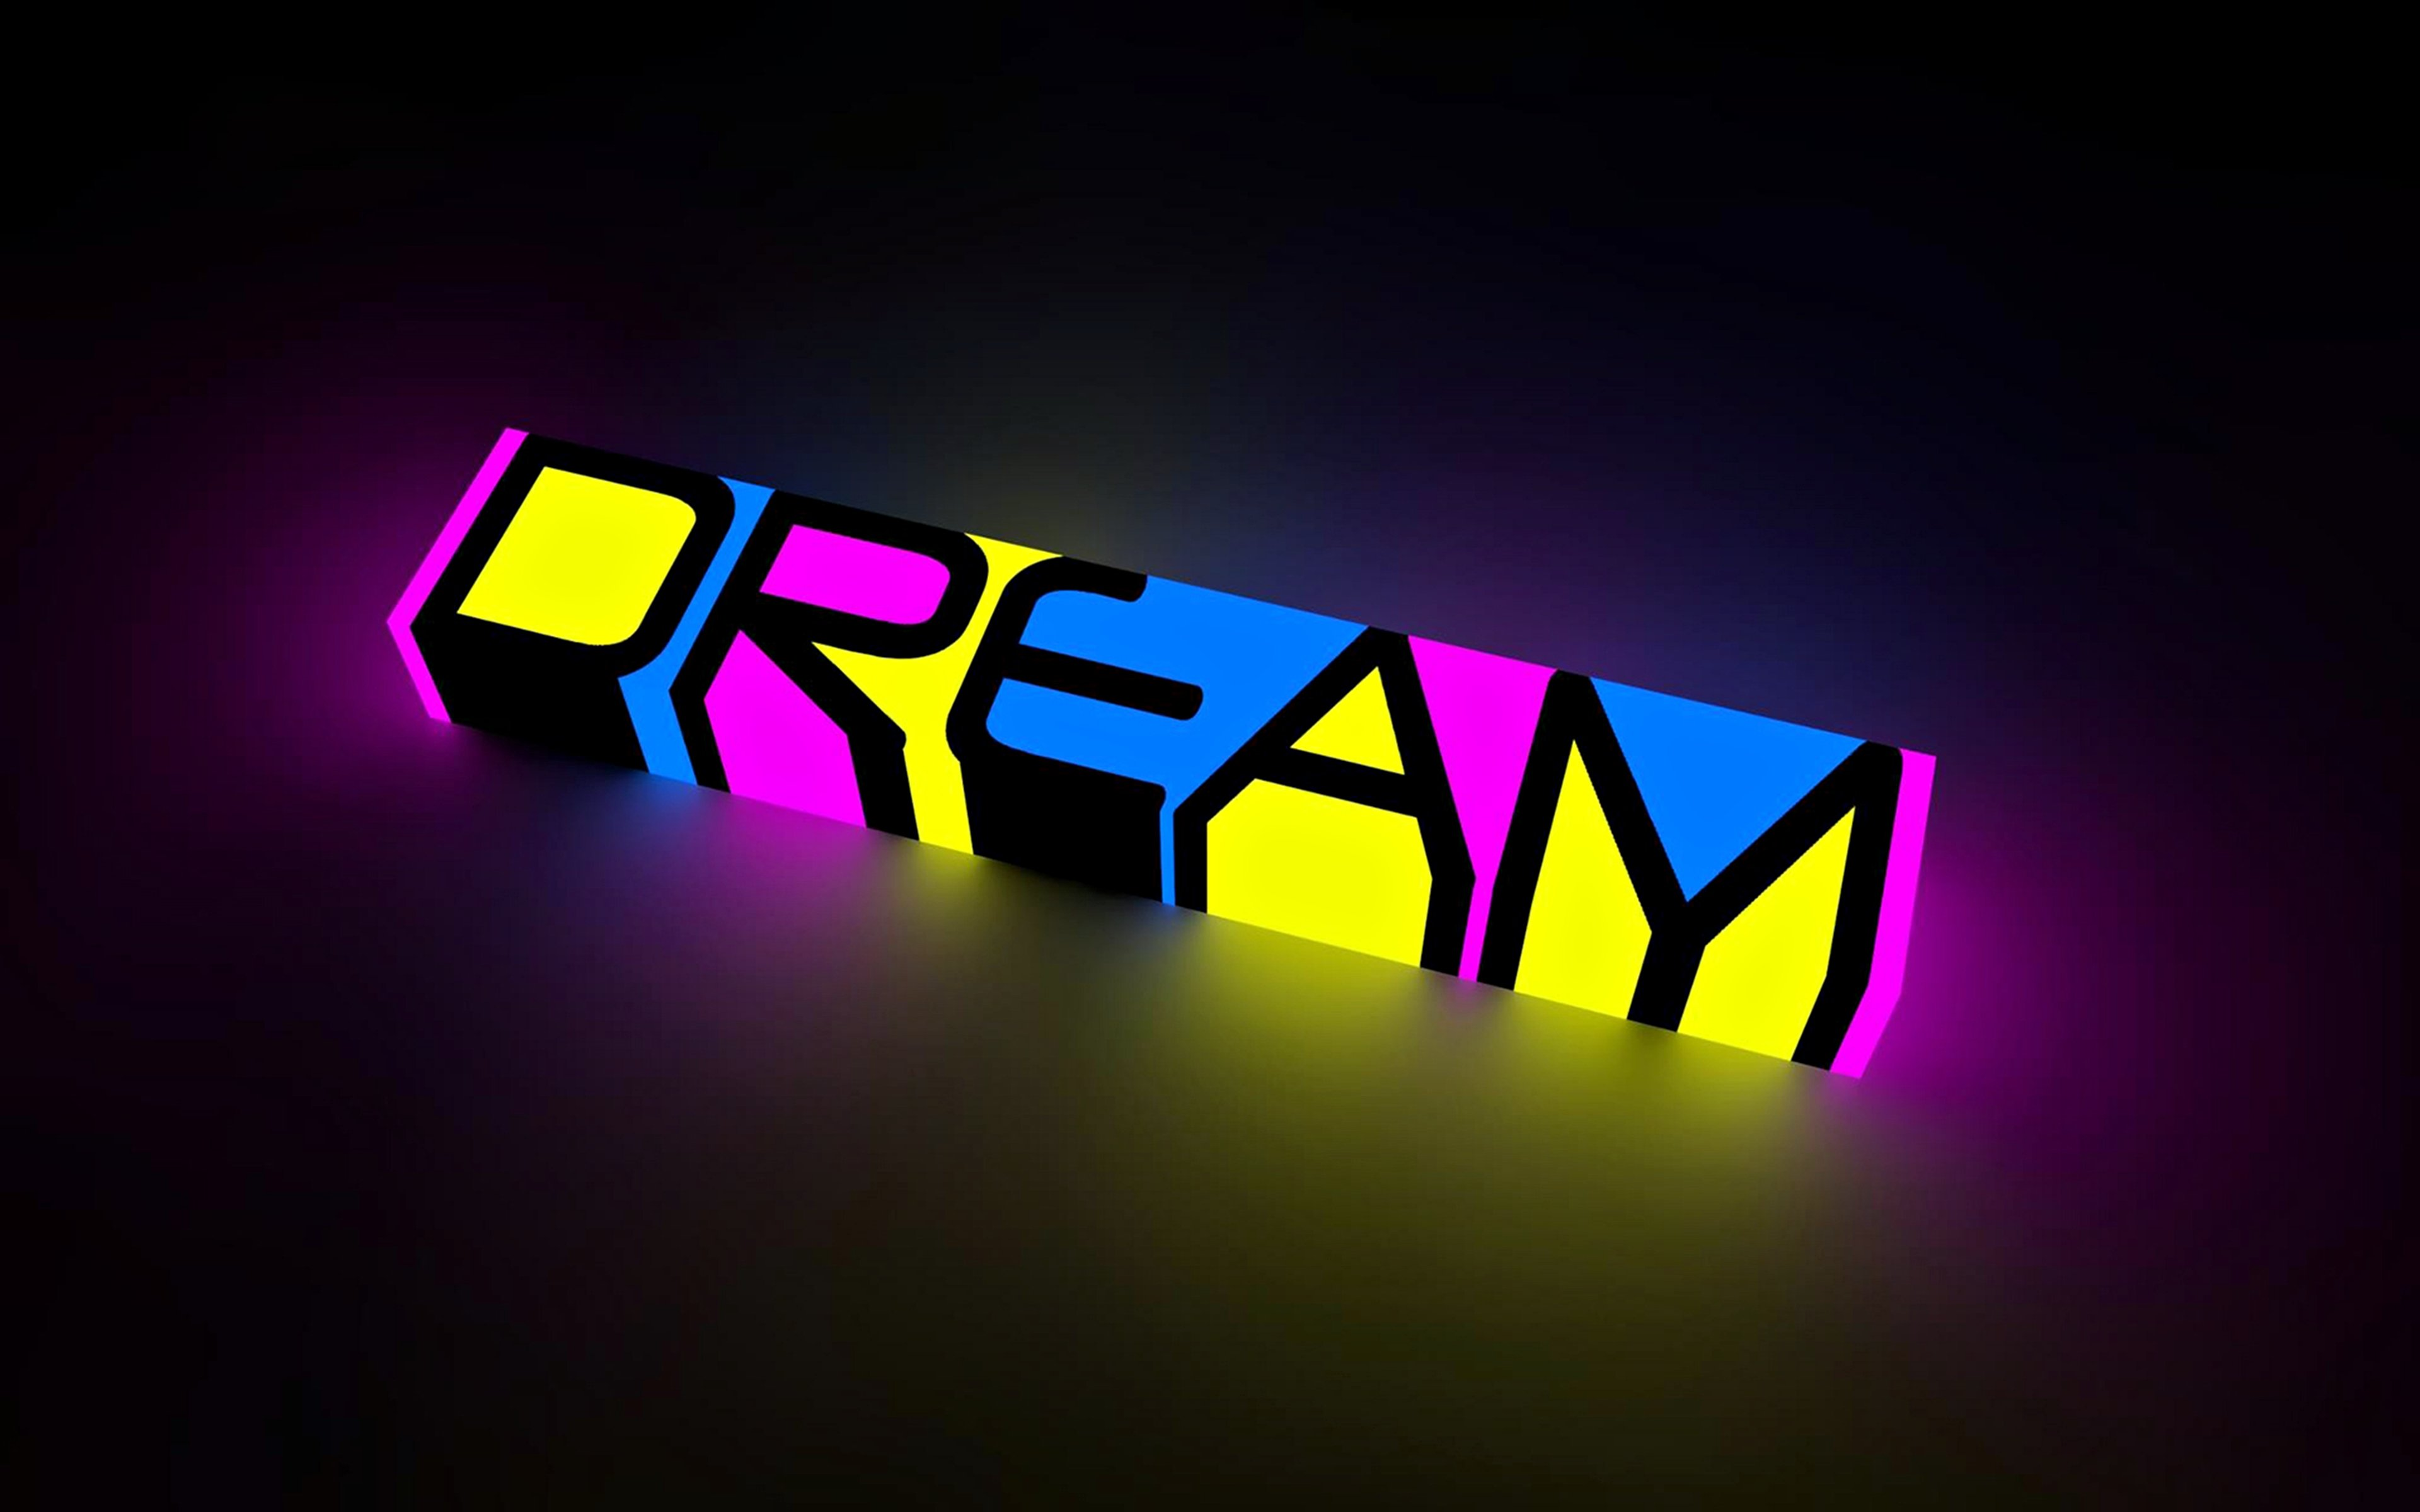 abstract dream colors neon bright words letters motivational inspiration text statement background wallpapes